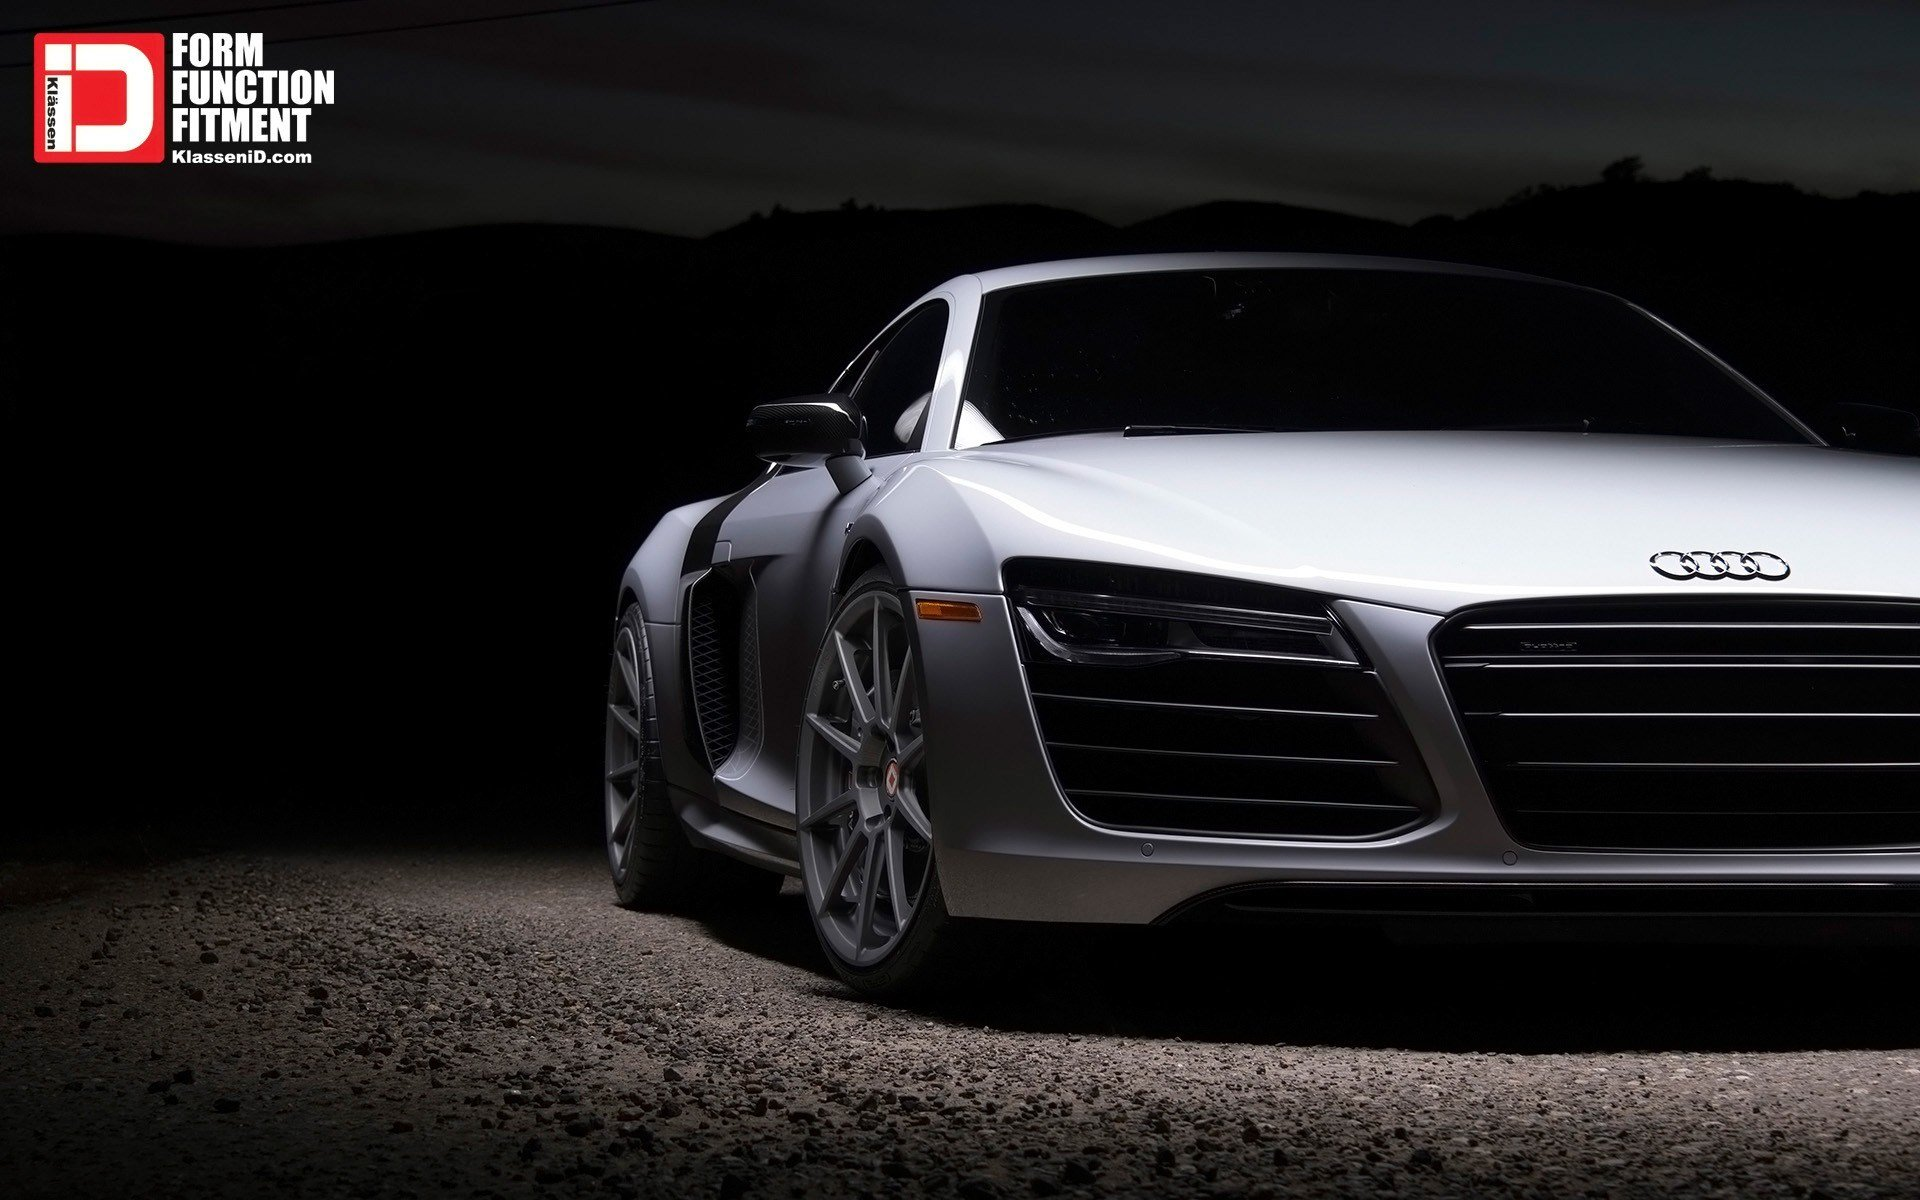 Latest 2015 Klassen Audi R8 Wallpaper Hd Car Wallpapers Id 5963 Free Download